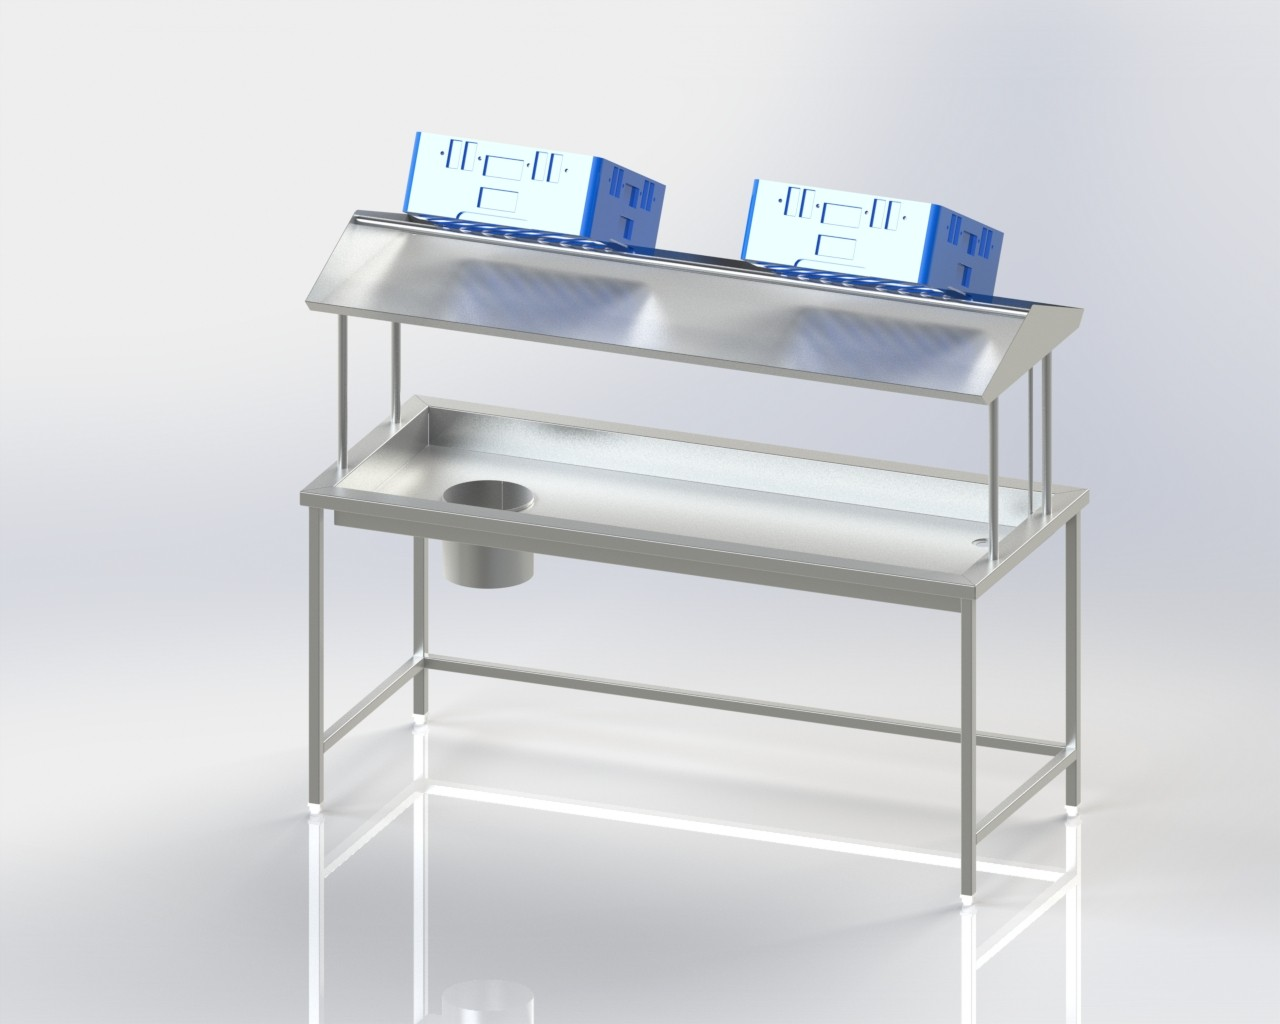 Soiled Dish Sorting Table with Scrapping Hole / Deep Top / Basket Storage